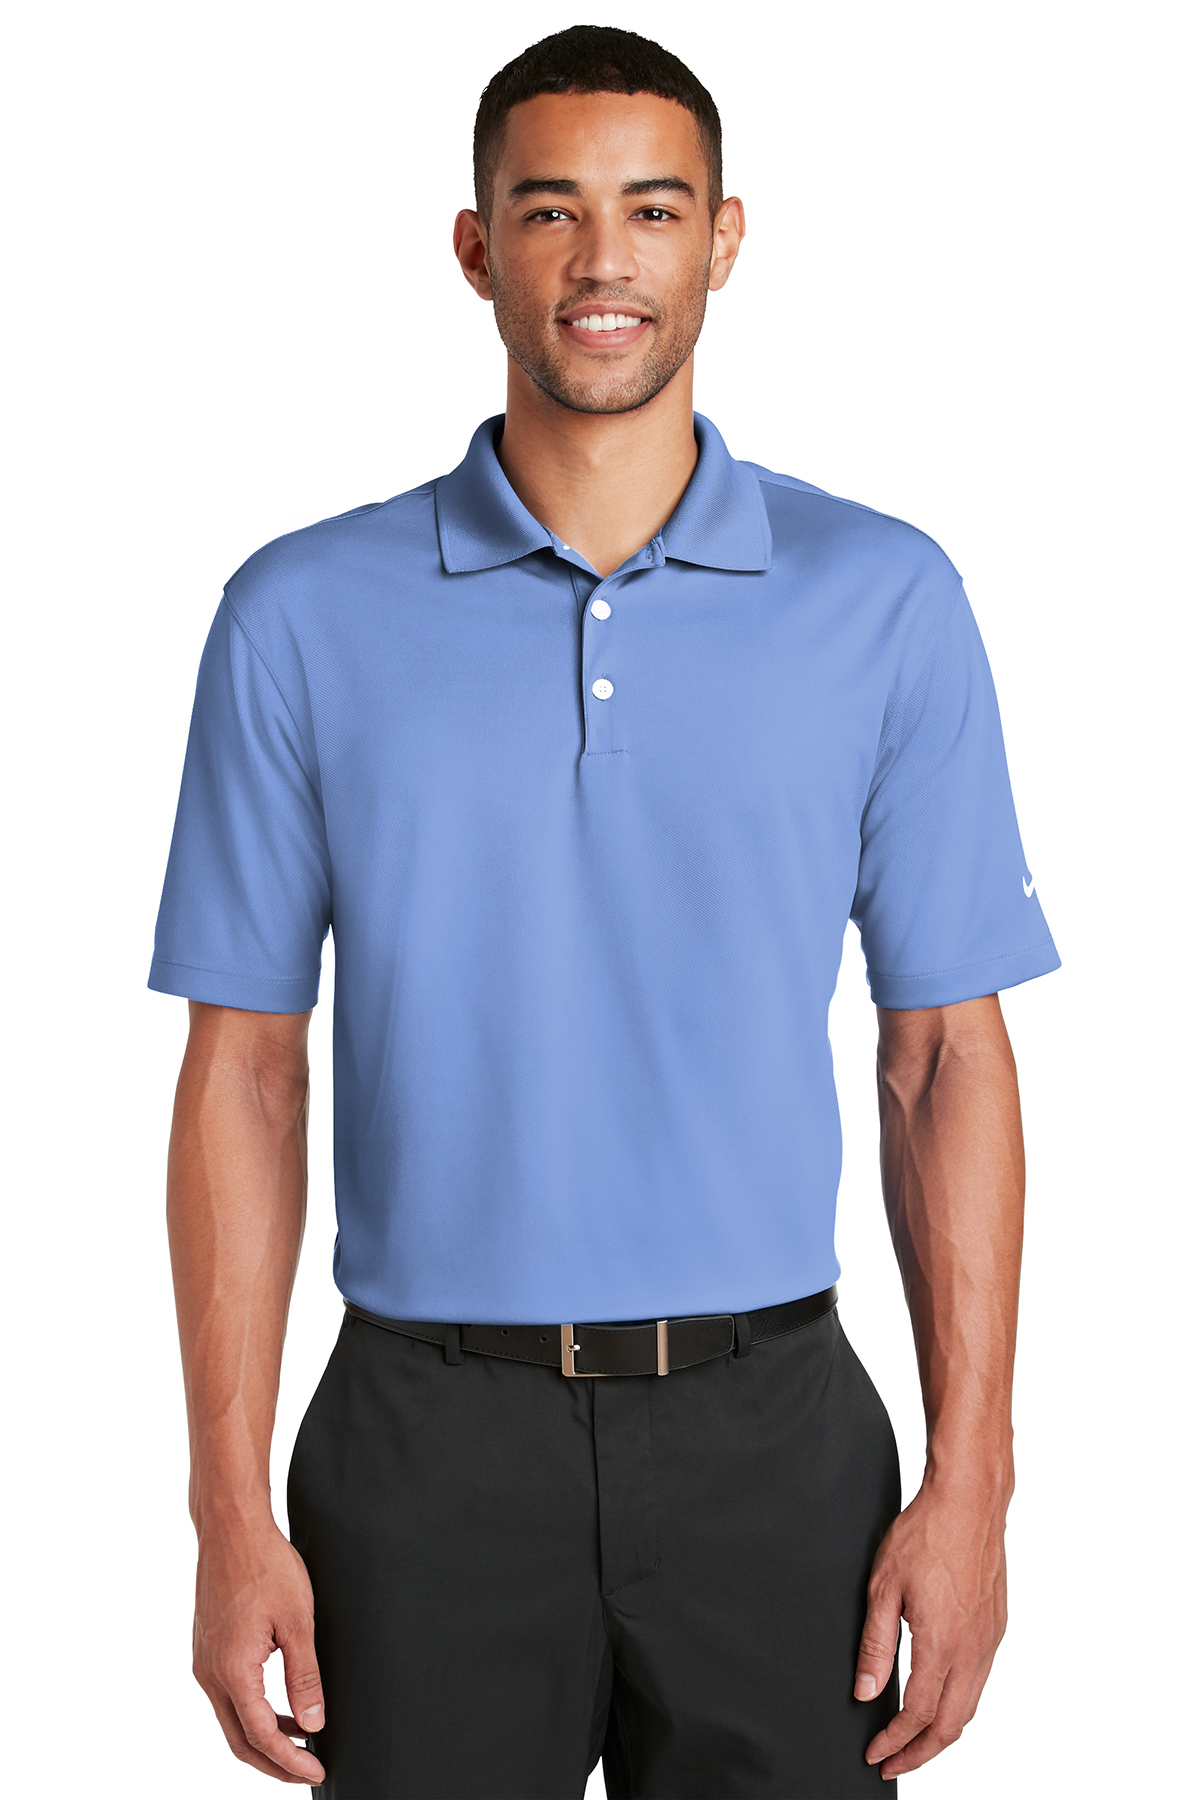 64a65792 Nike Dri-FIT Micro Pique Polo | Performance | Polos/Knits | SanMar